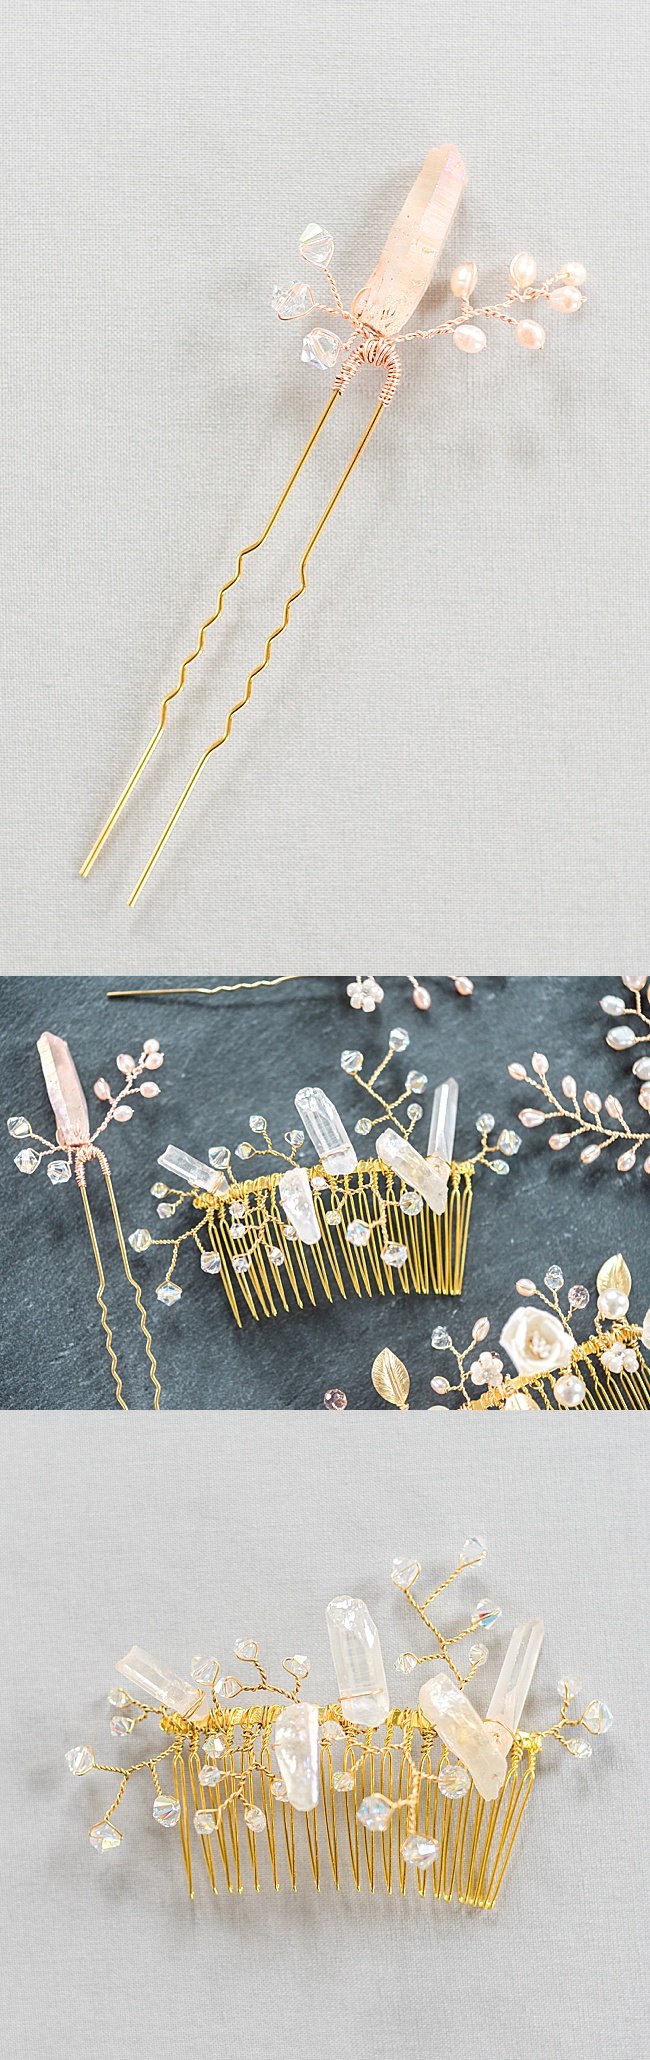 Raw crystal spike gold bridal hair accessories, heirloom quality wedding hairpieces handmade in Baltimore by J'Adorn Designs jewelry artisan Alison Jefferies